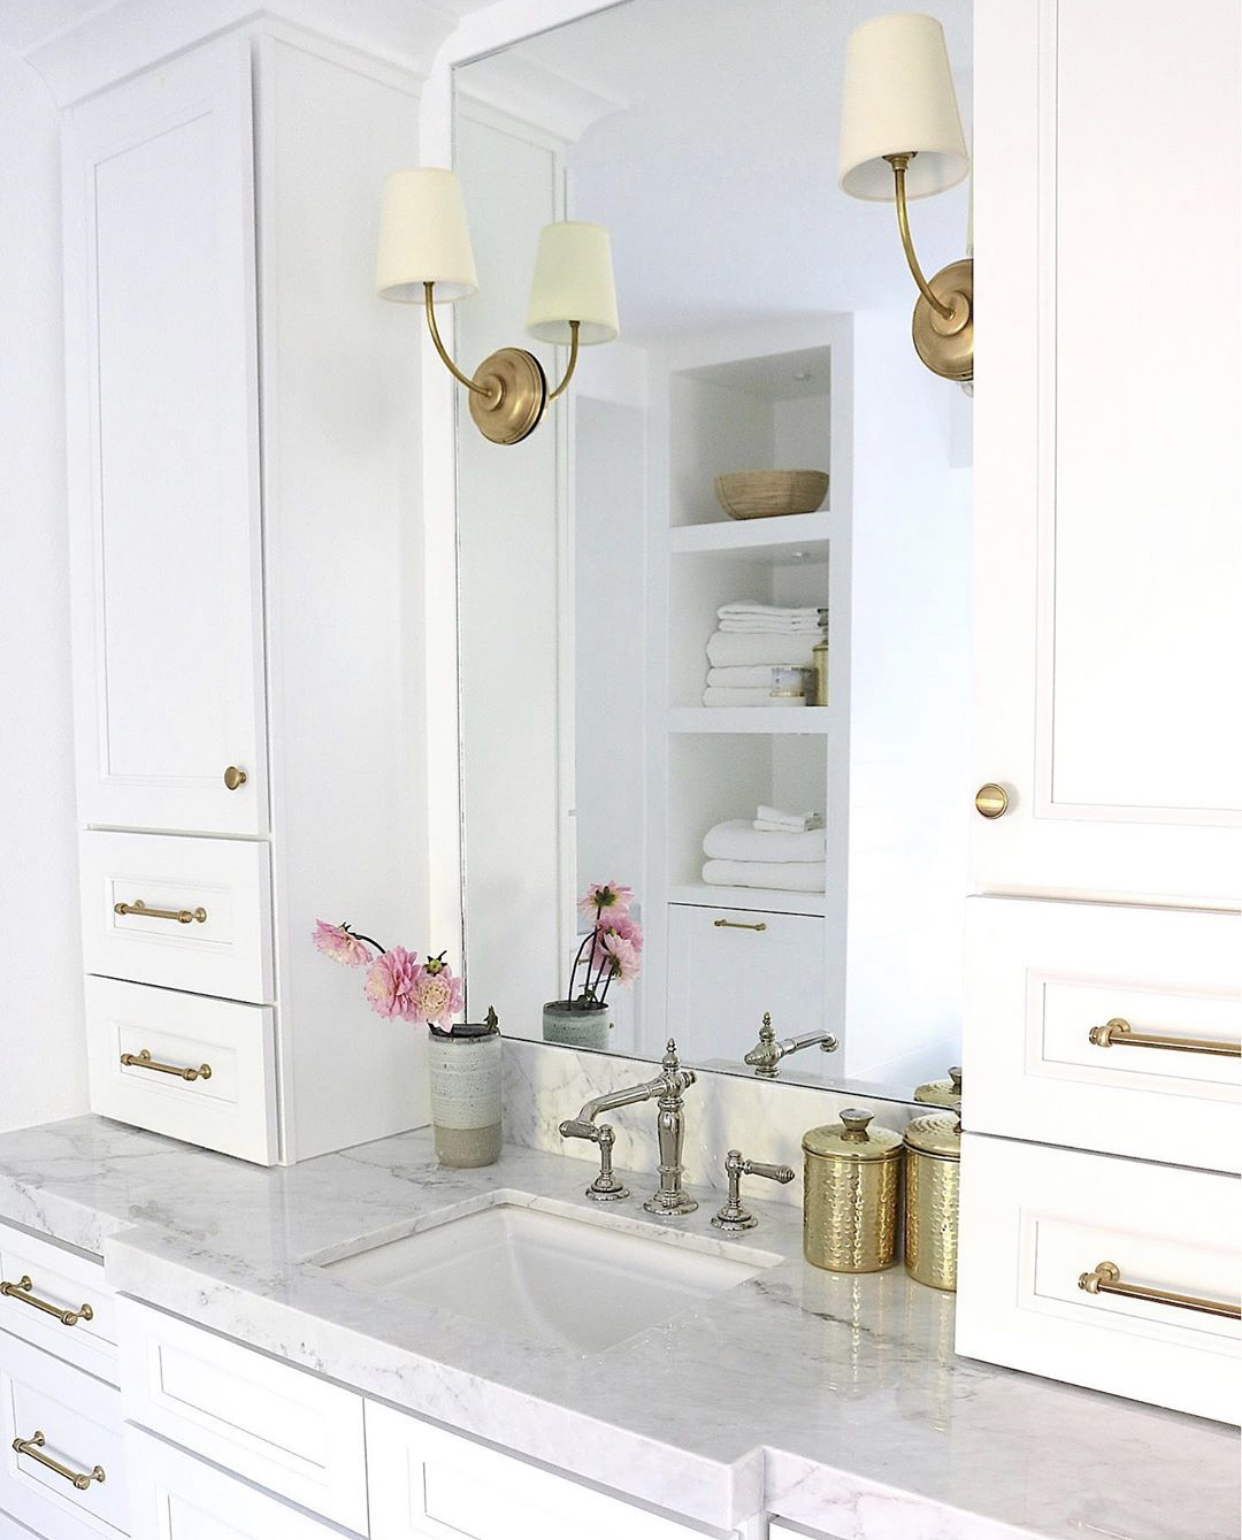 brass and nickel metals used in a bathroom with marble countertop